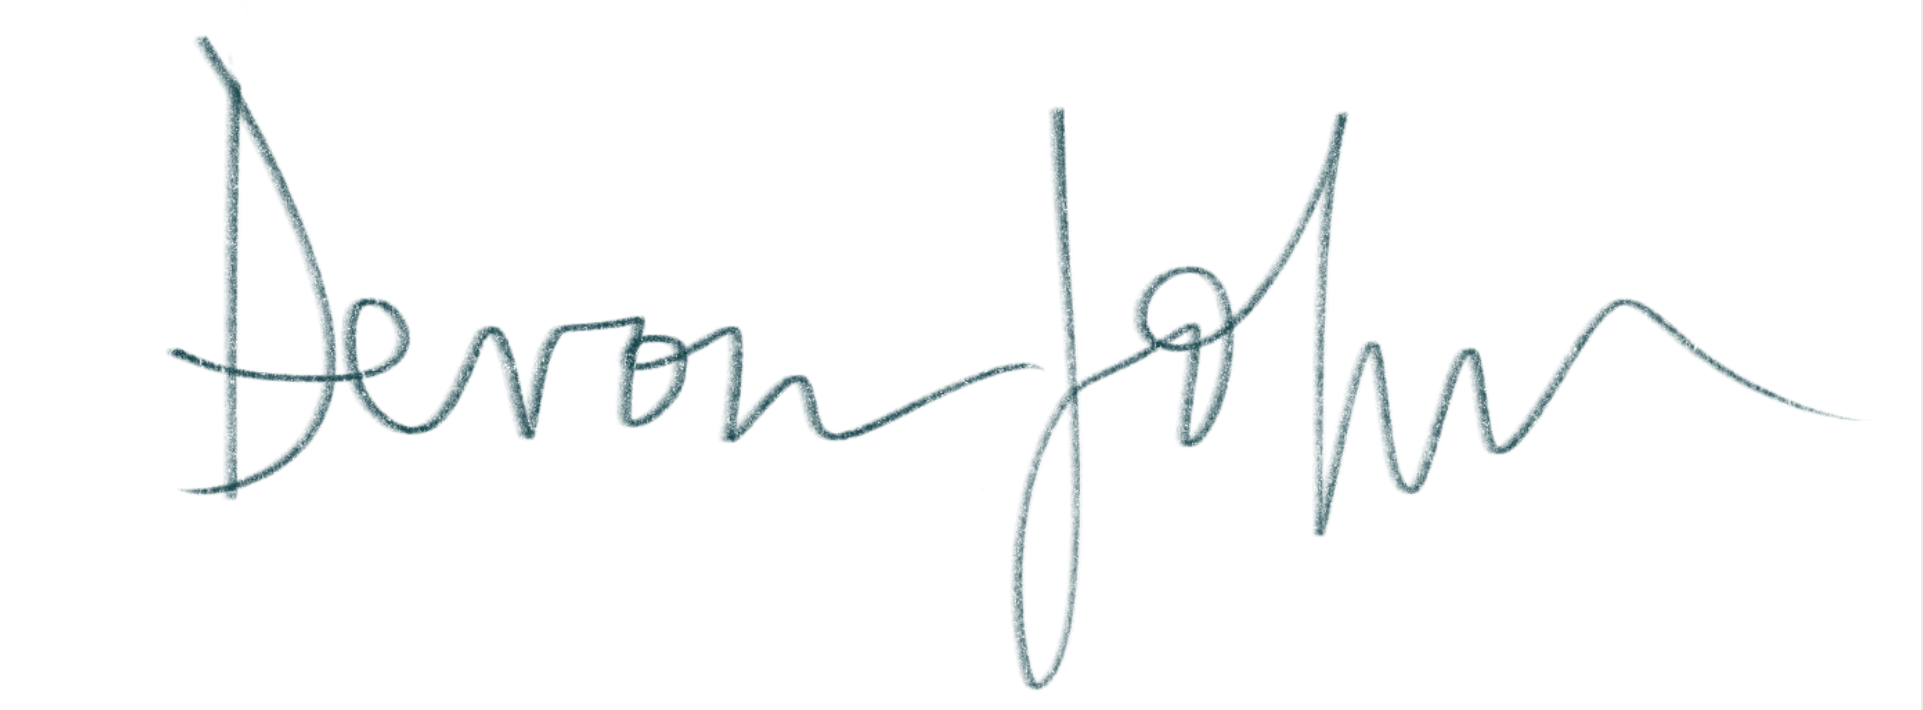 Devon johnson's Signature